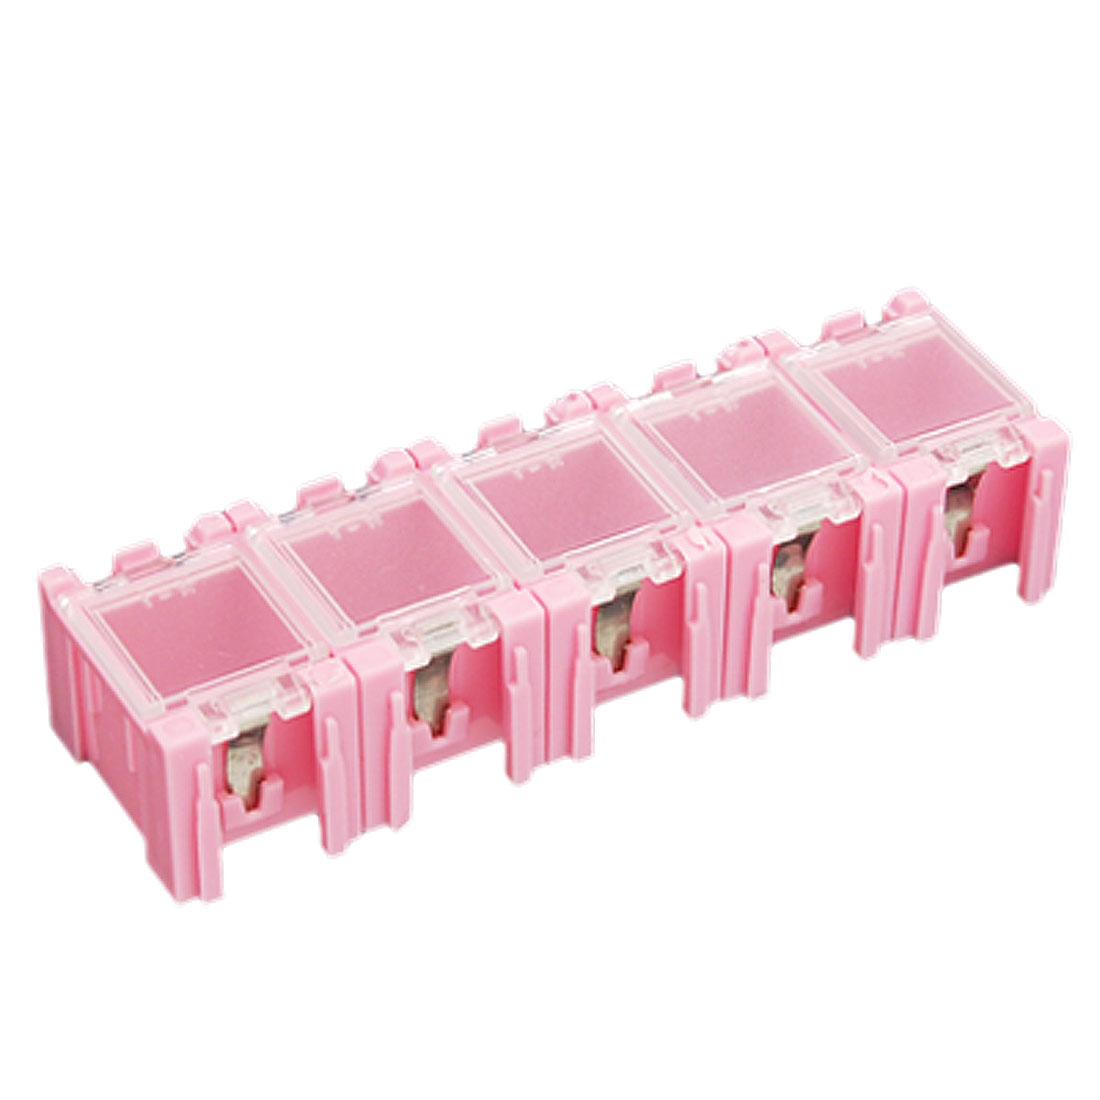 Plastic Components Electronics Storage Boxes Pink Case